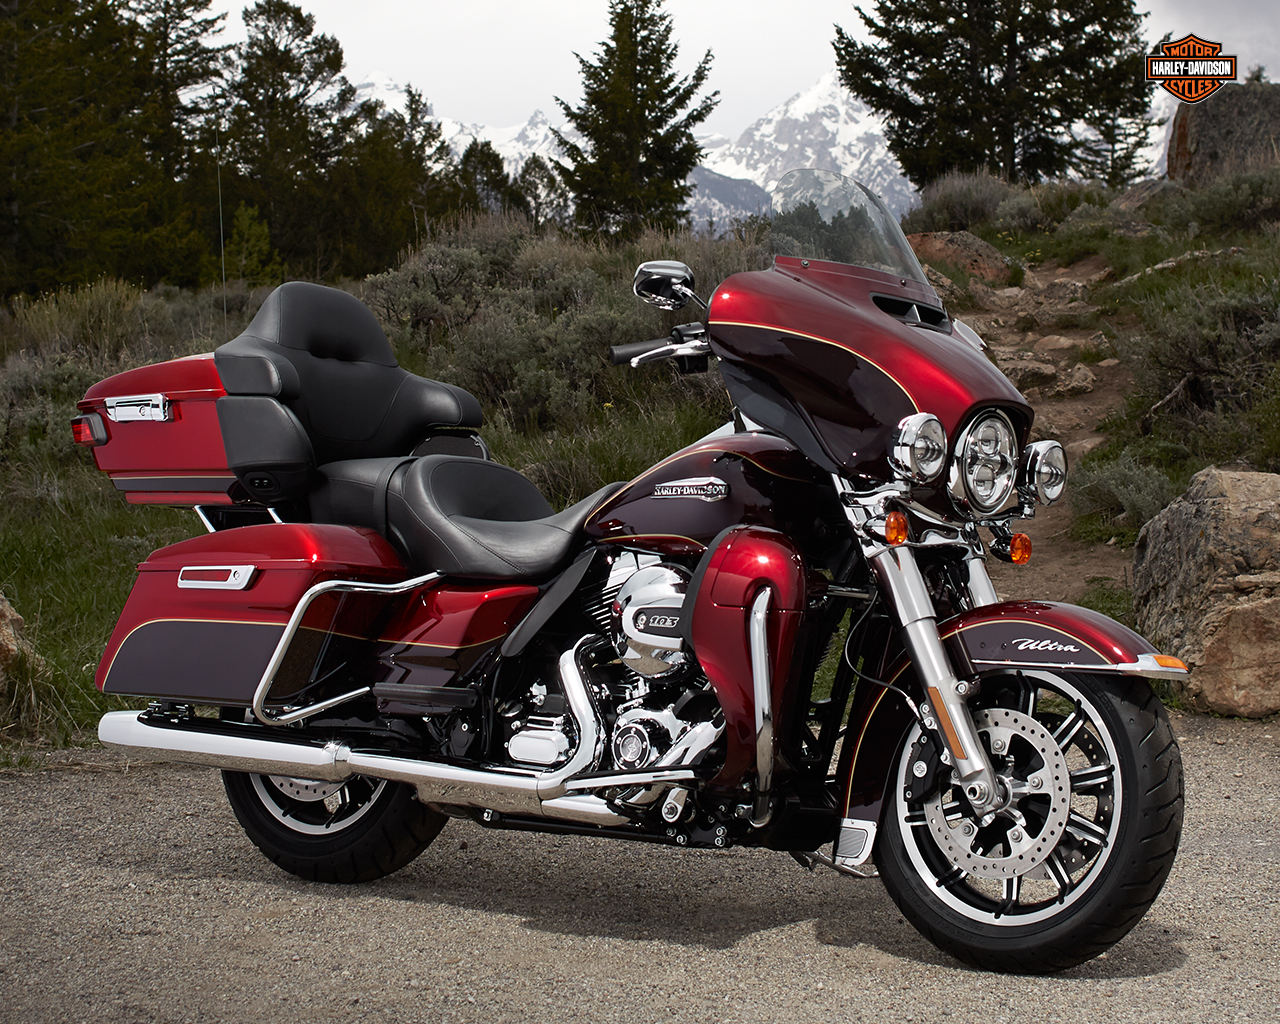 2015 Harley-Davidson Electra Glide Ultra Classic Low Rumored - autoevolution